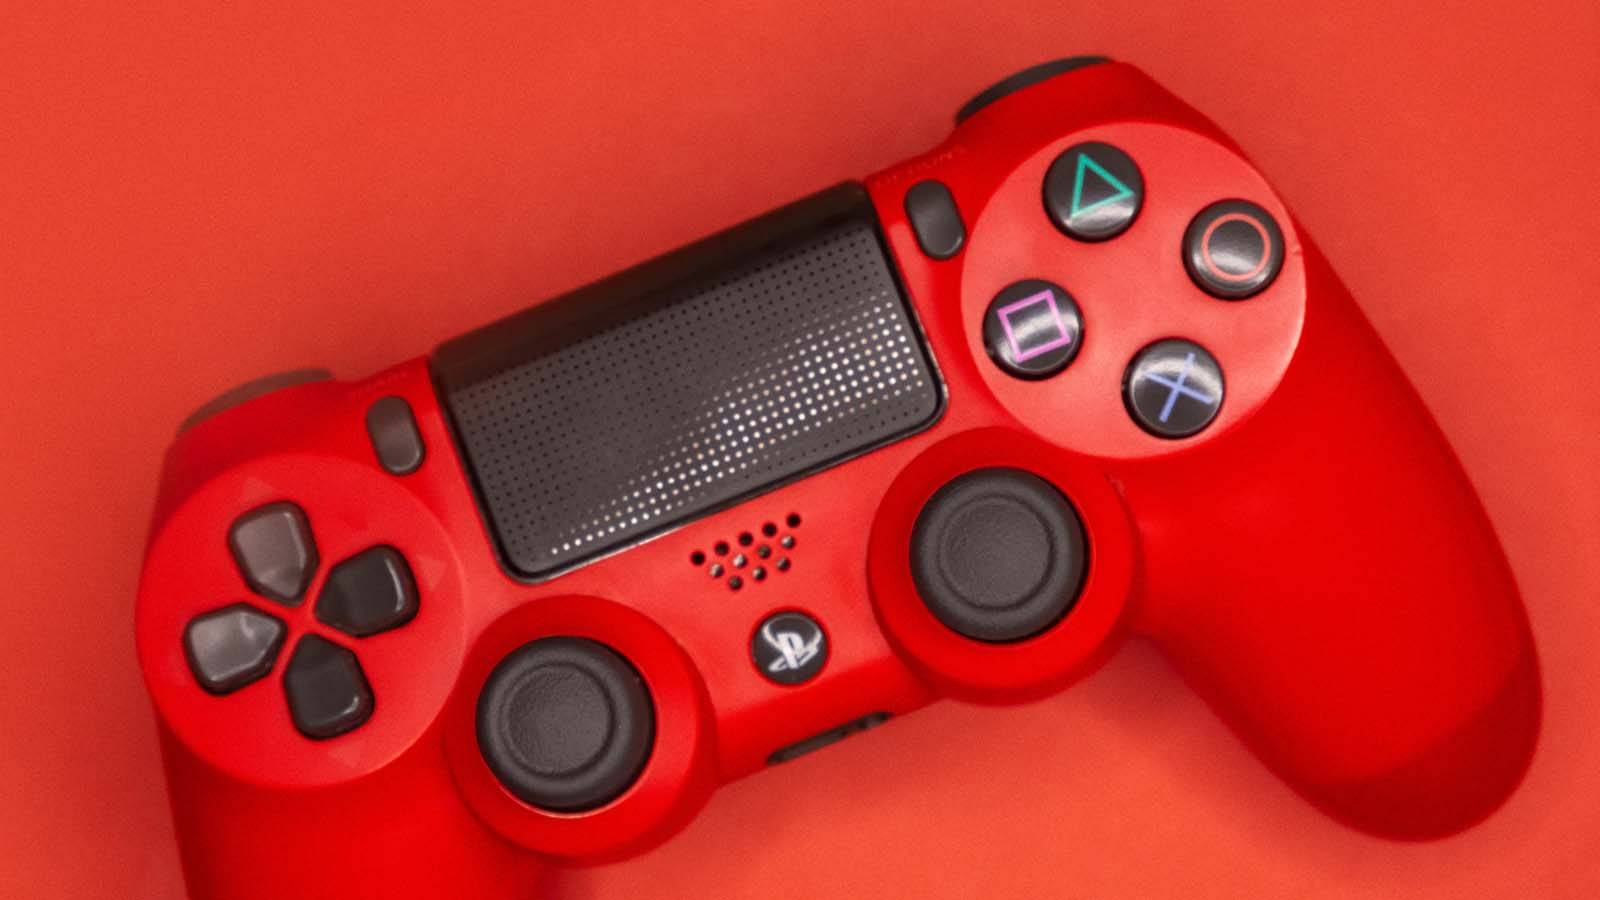 red playstation 4 controller